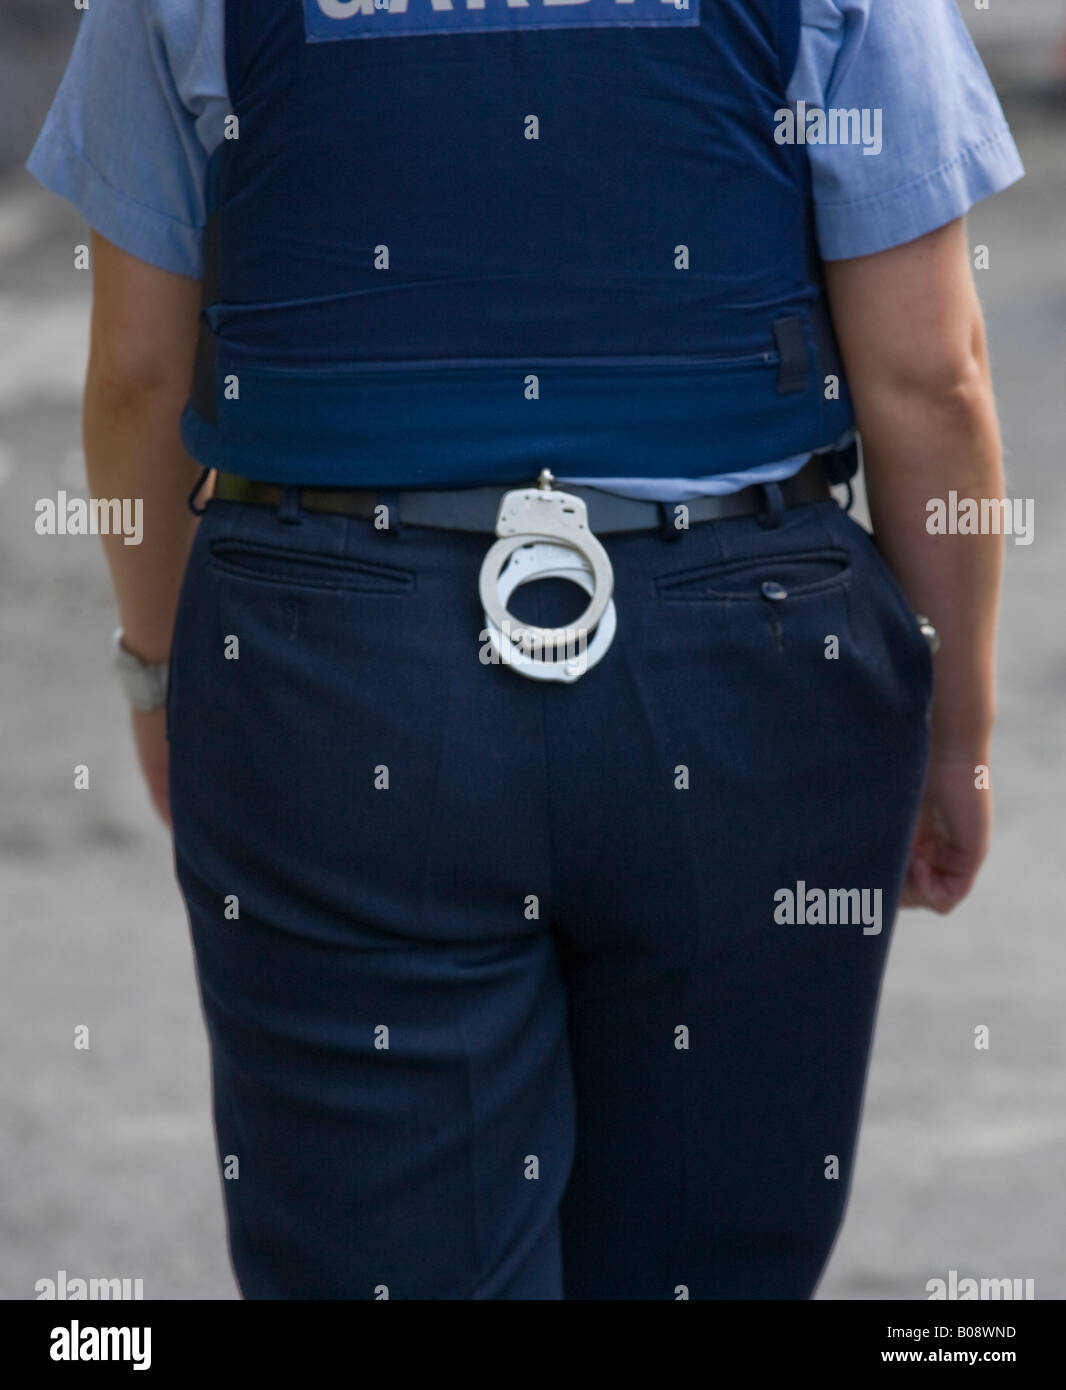 rear view of police woman with a pair of handcuffs on her belt